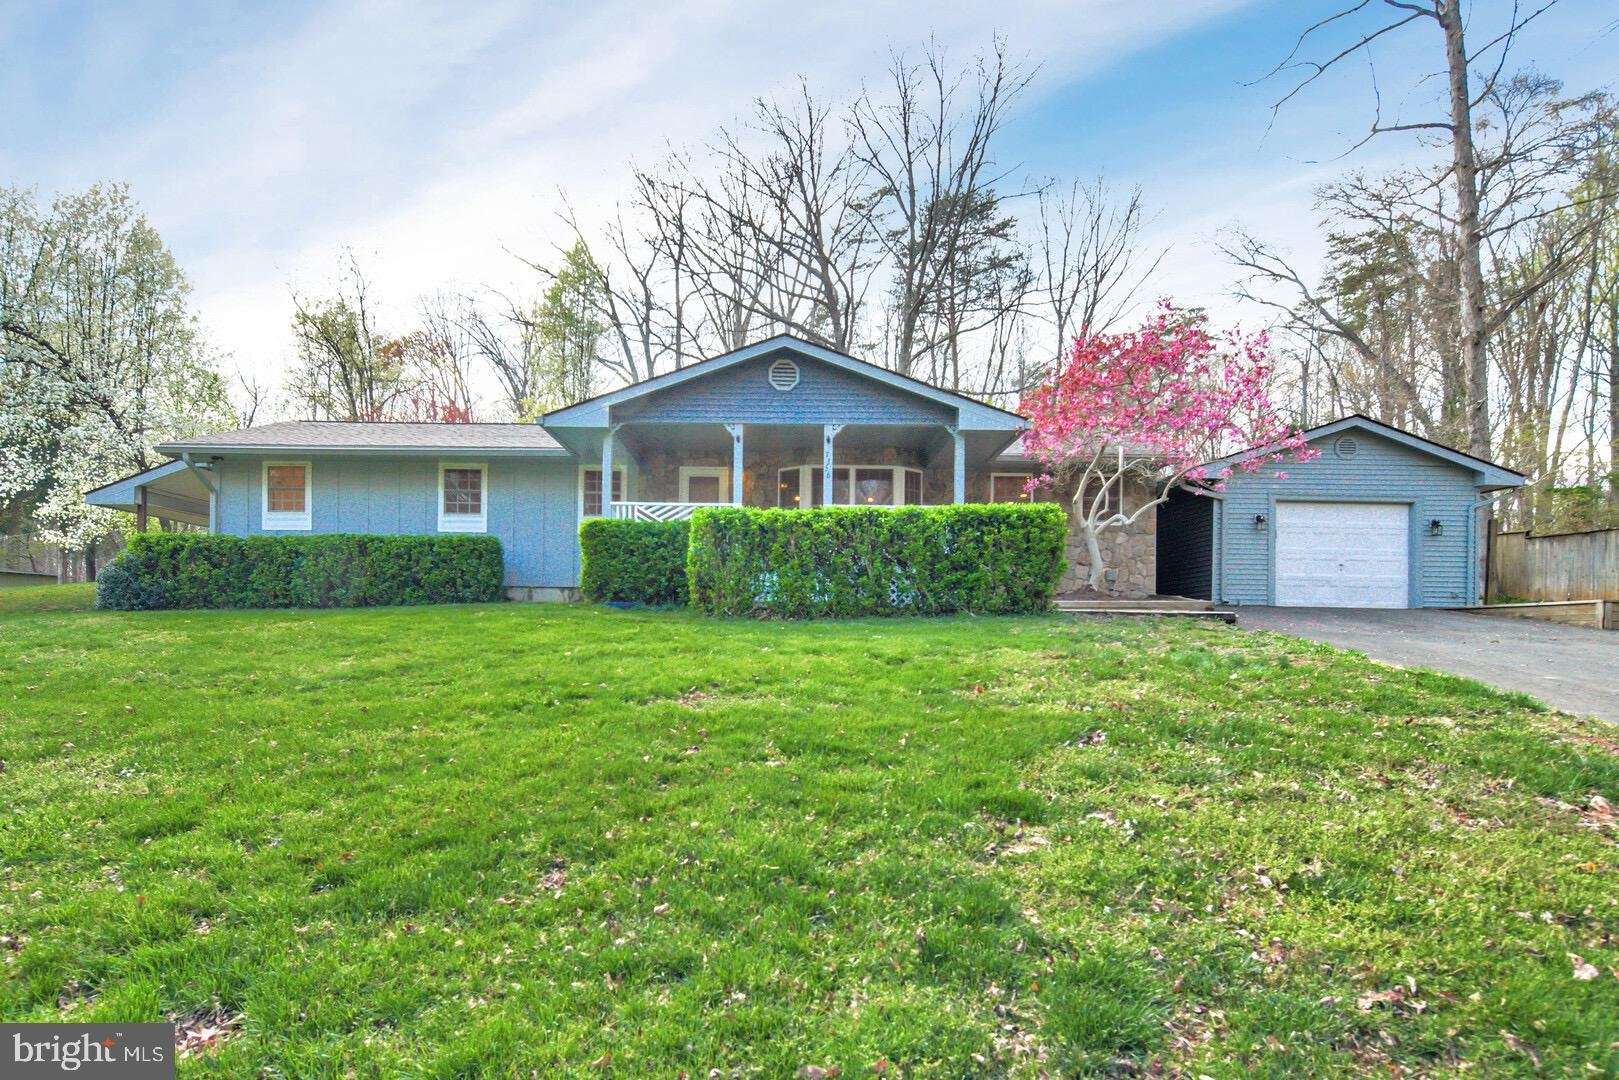 Beautifully remodeled rambler on just over an acre of treed land in a GREAT location!!  July 2019 there was a full remodel done to the home to include: Full Kitchen, All New appliances, New Flooring, All Bathrooms Fully Renovated, New Roof, New Water System.  2021- New Paint throughout, All new carpeting, recessed lighting added.   New Water System, Filtration and Pump, New HVAC (all within 5 years).   This home is TRULY move in ready! Don't Miss Out...this home is going to be HOT!!